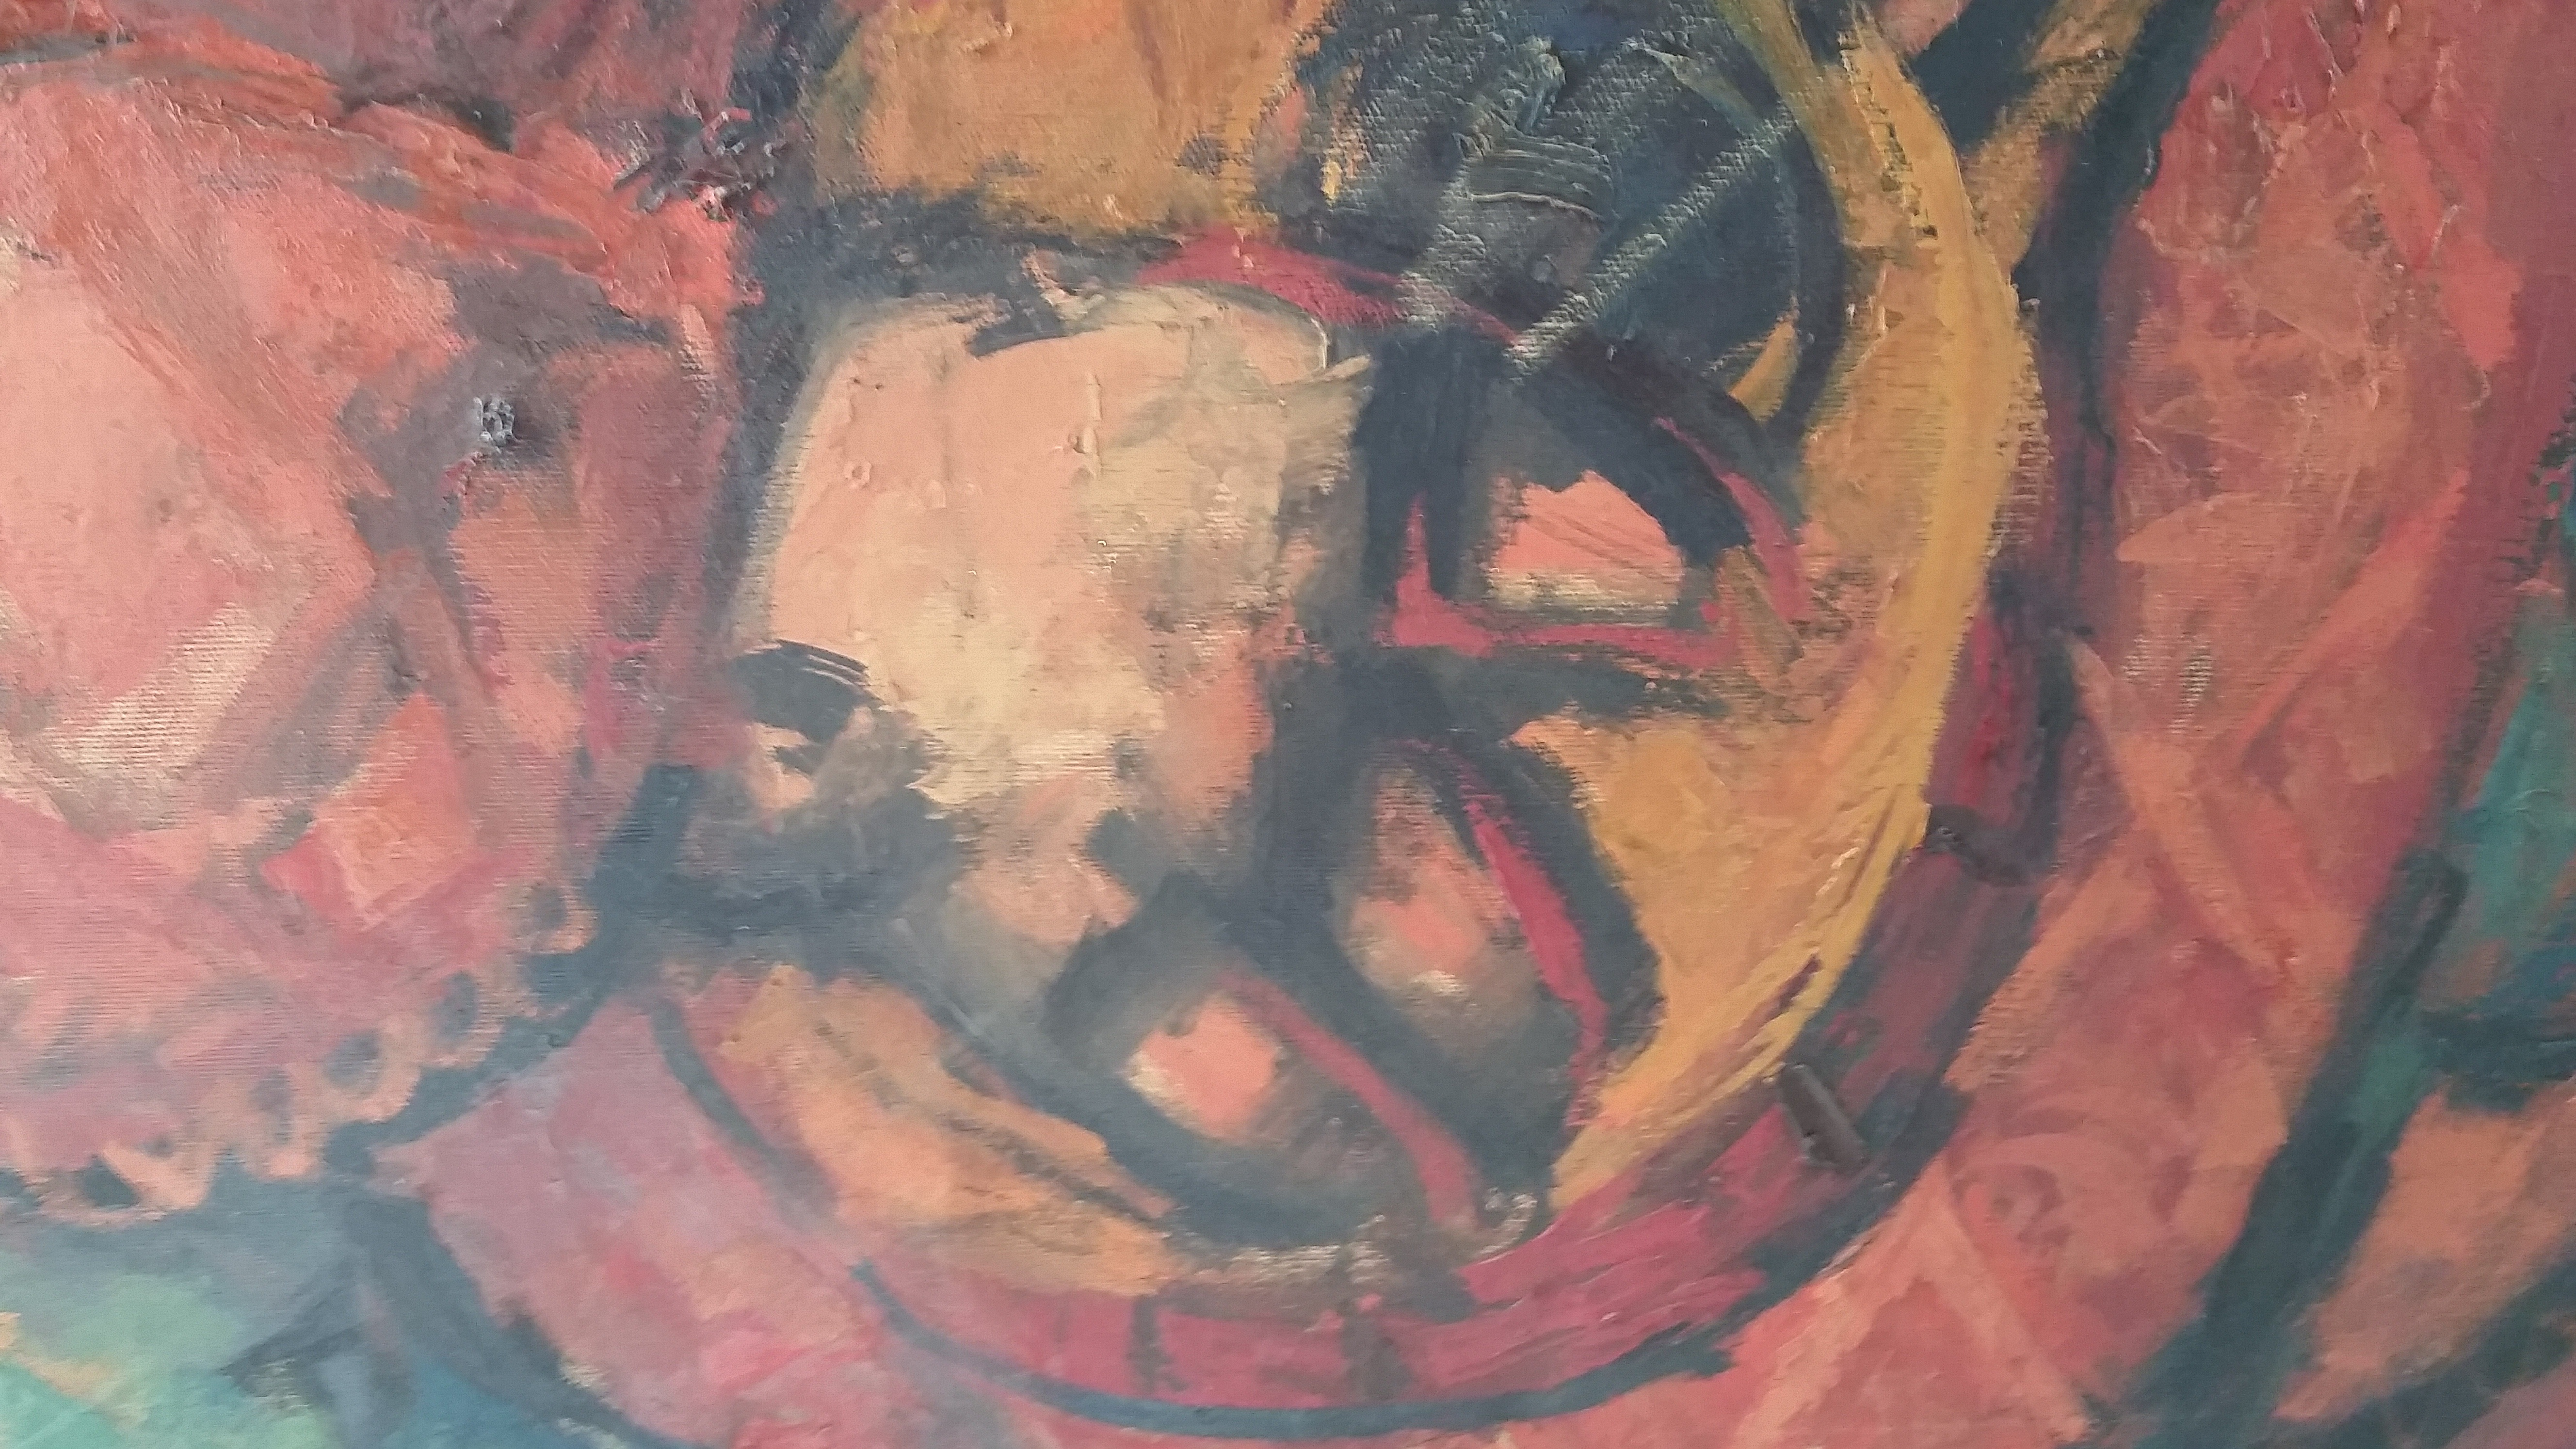 close up of right hand 20150530_093417.jpg